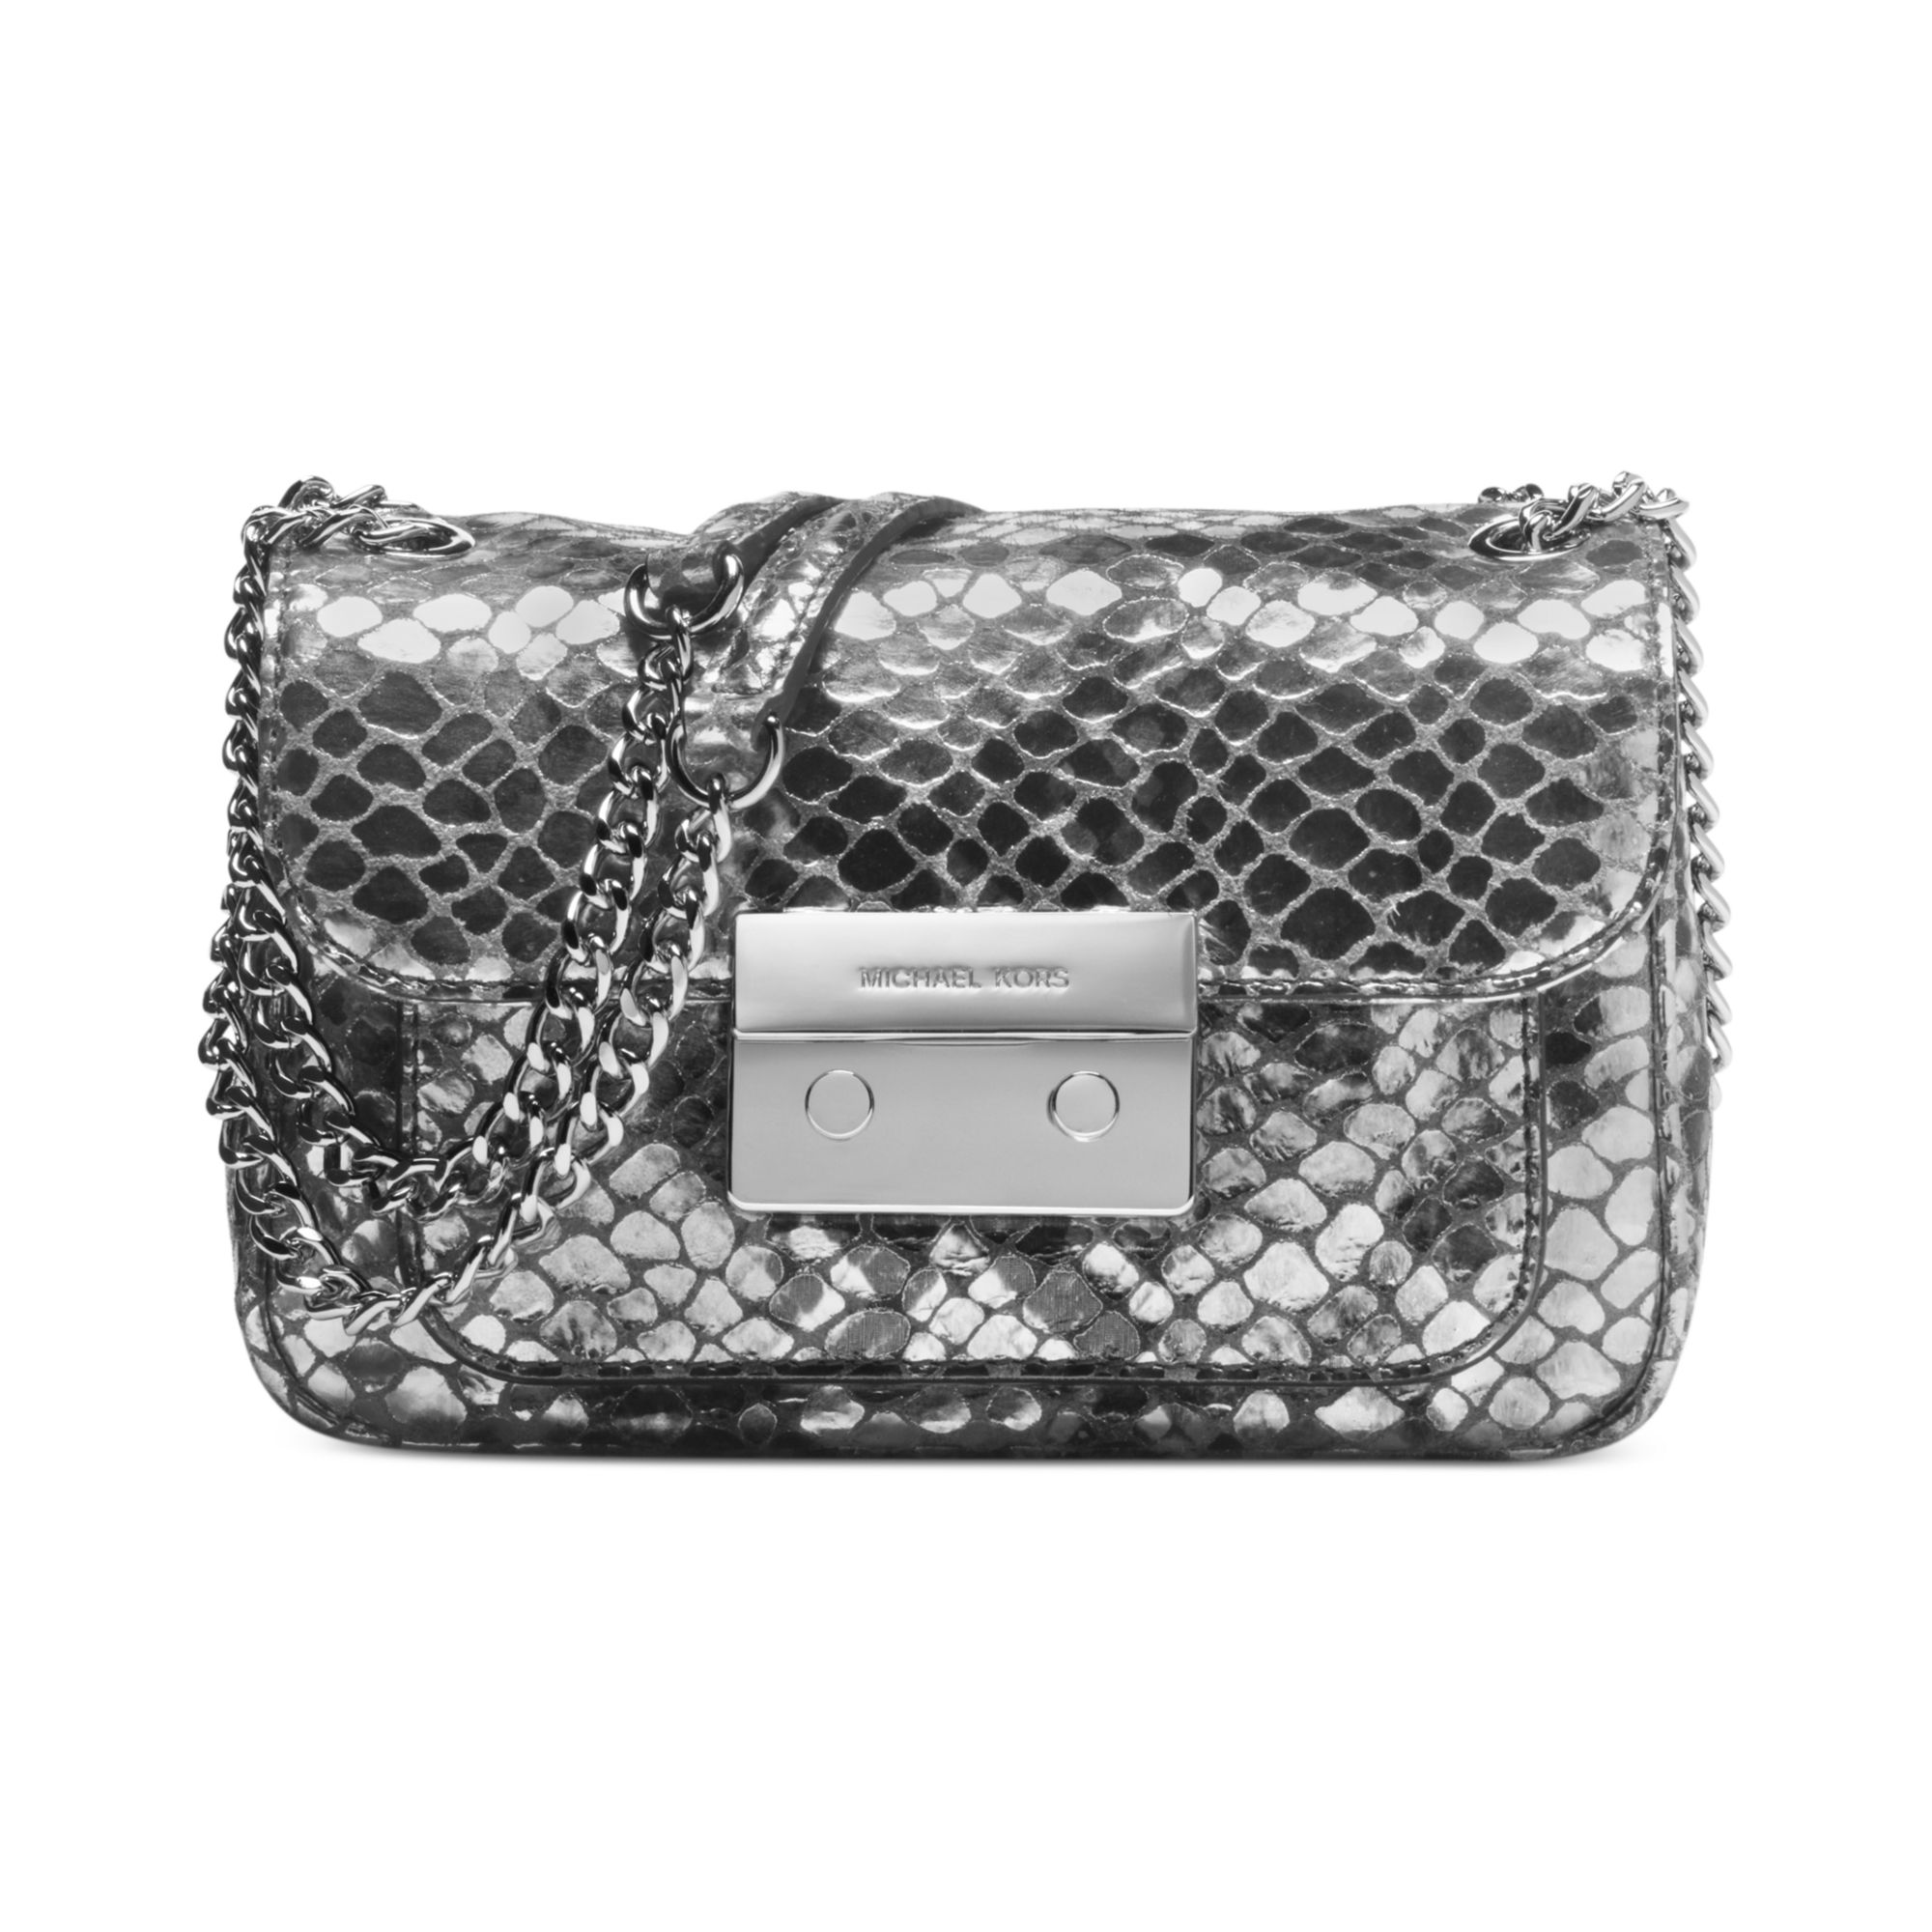 michael kors clutch in silver lyst. Black Bedroom Furniture Sets. Home Design Ideas